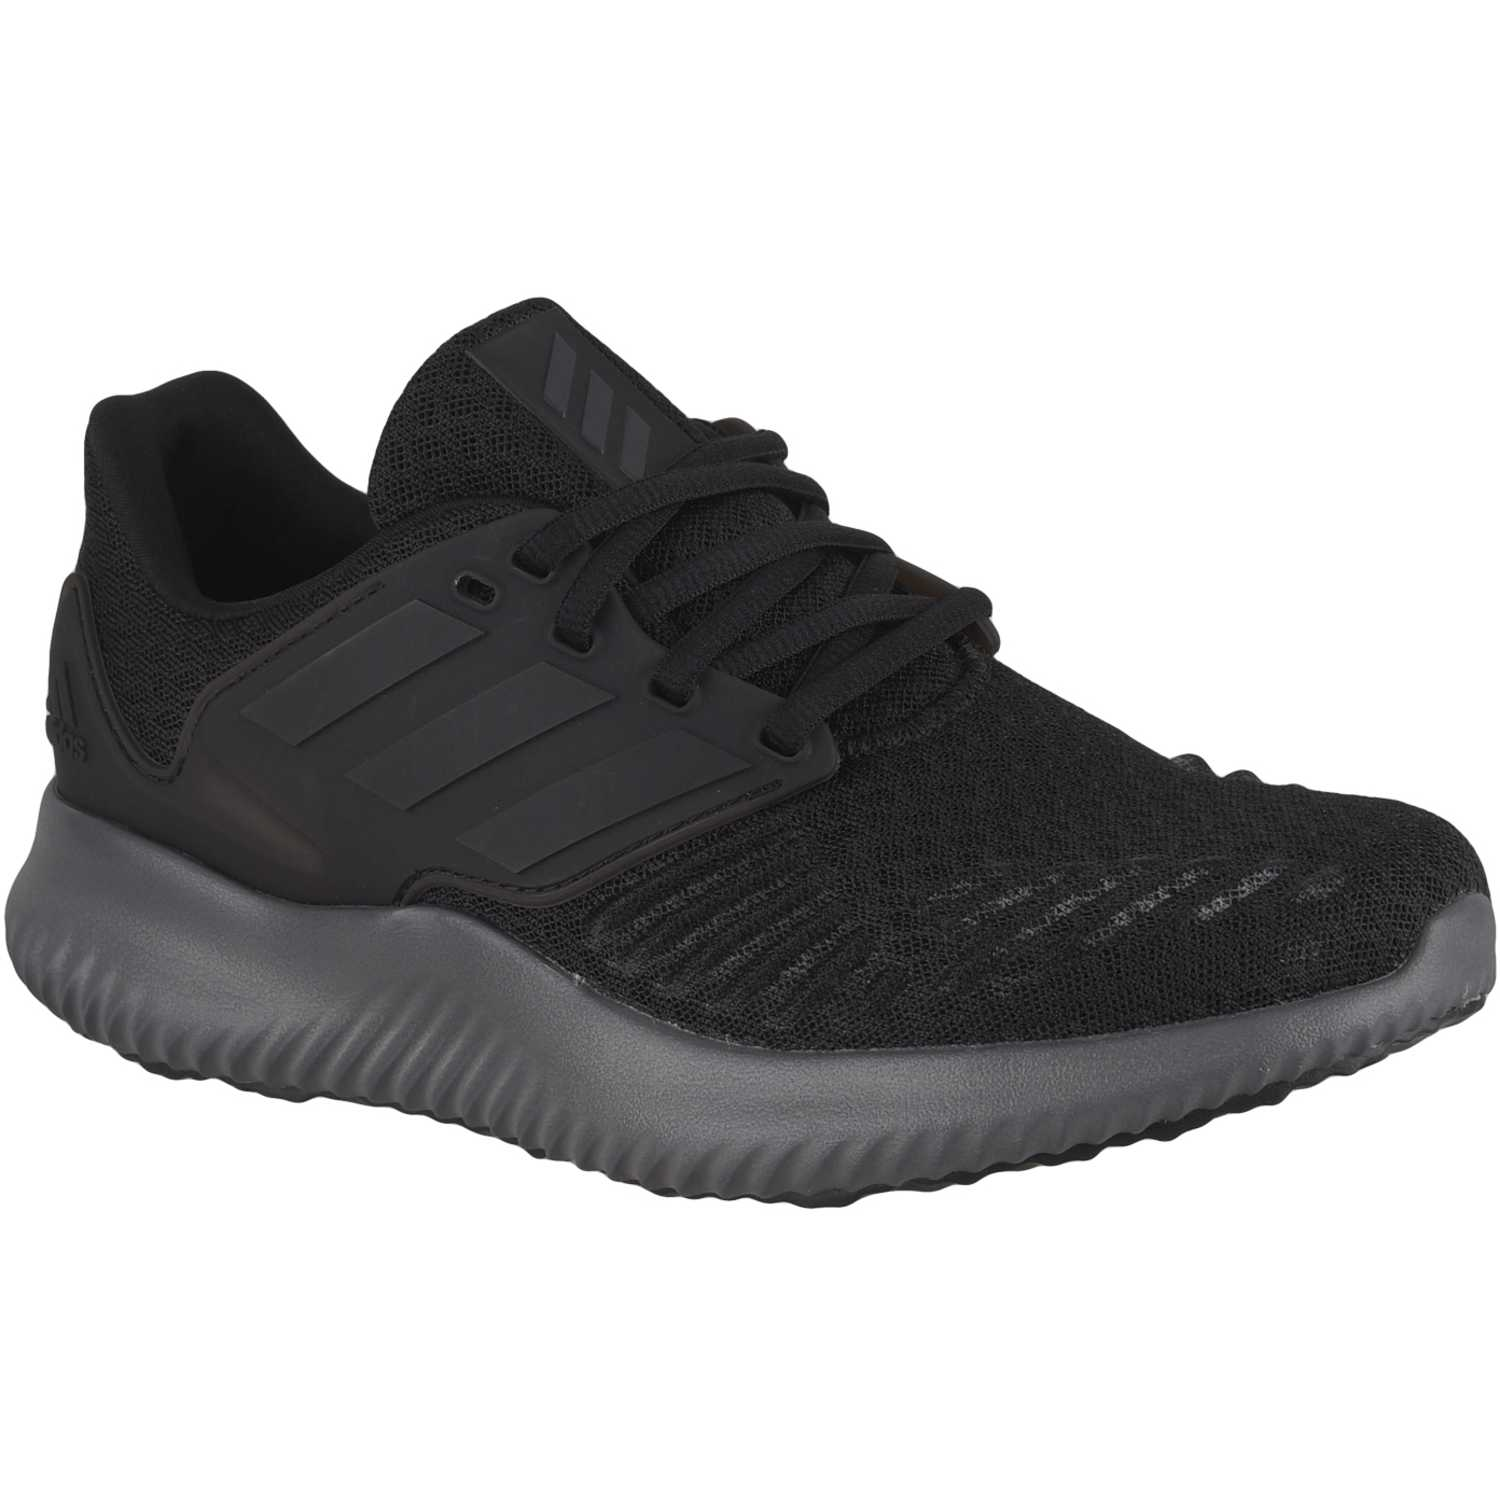 best sneakers ae4d0 1b0b5 Zapatilla de Mujer Adidas Negro alphabounce rc.2 w